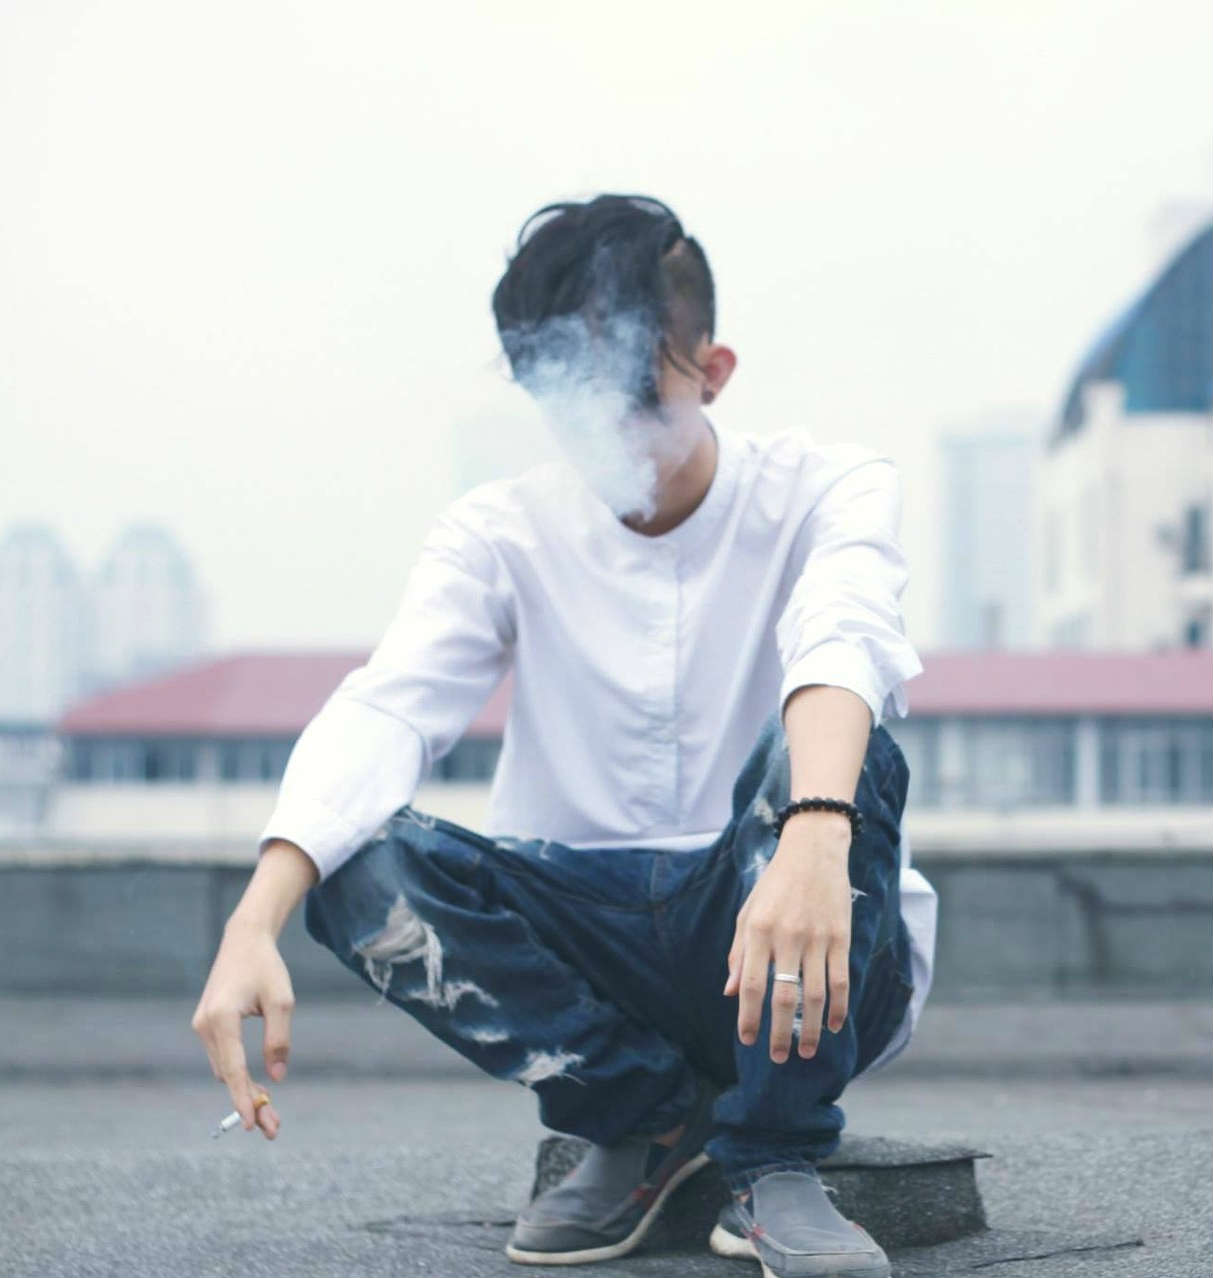 Teenage boy smoking